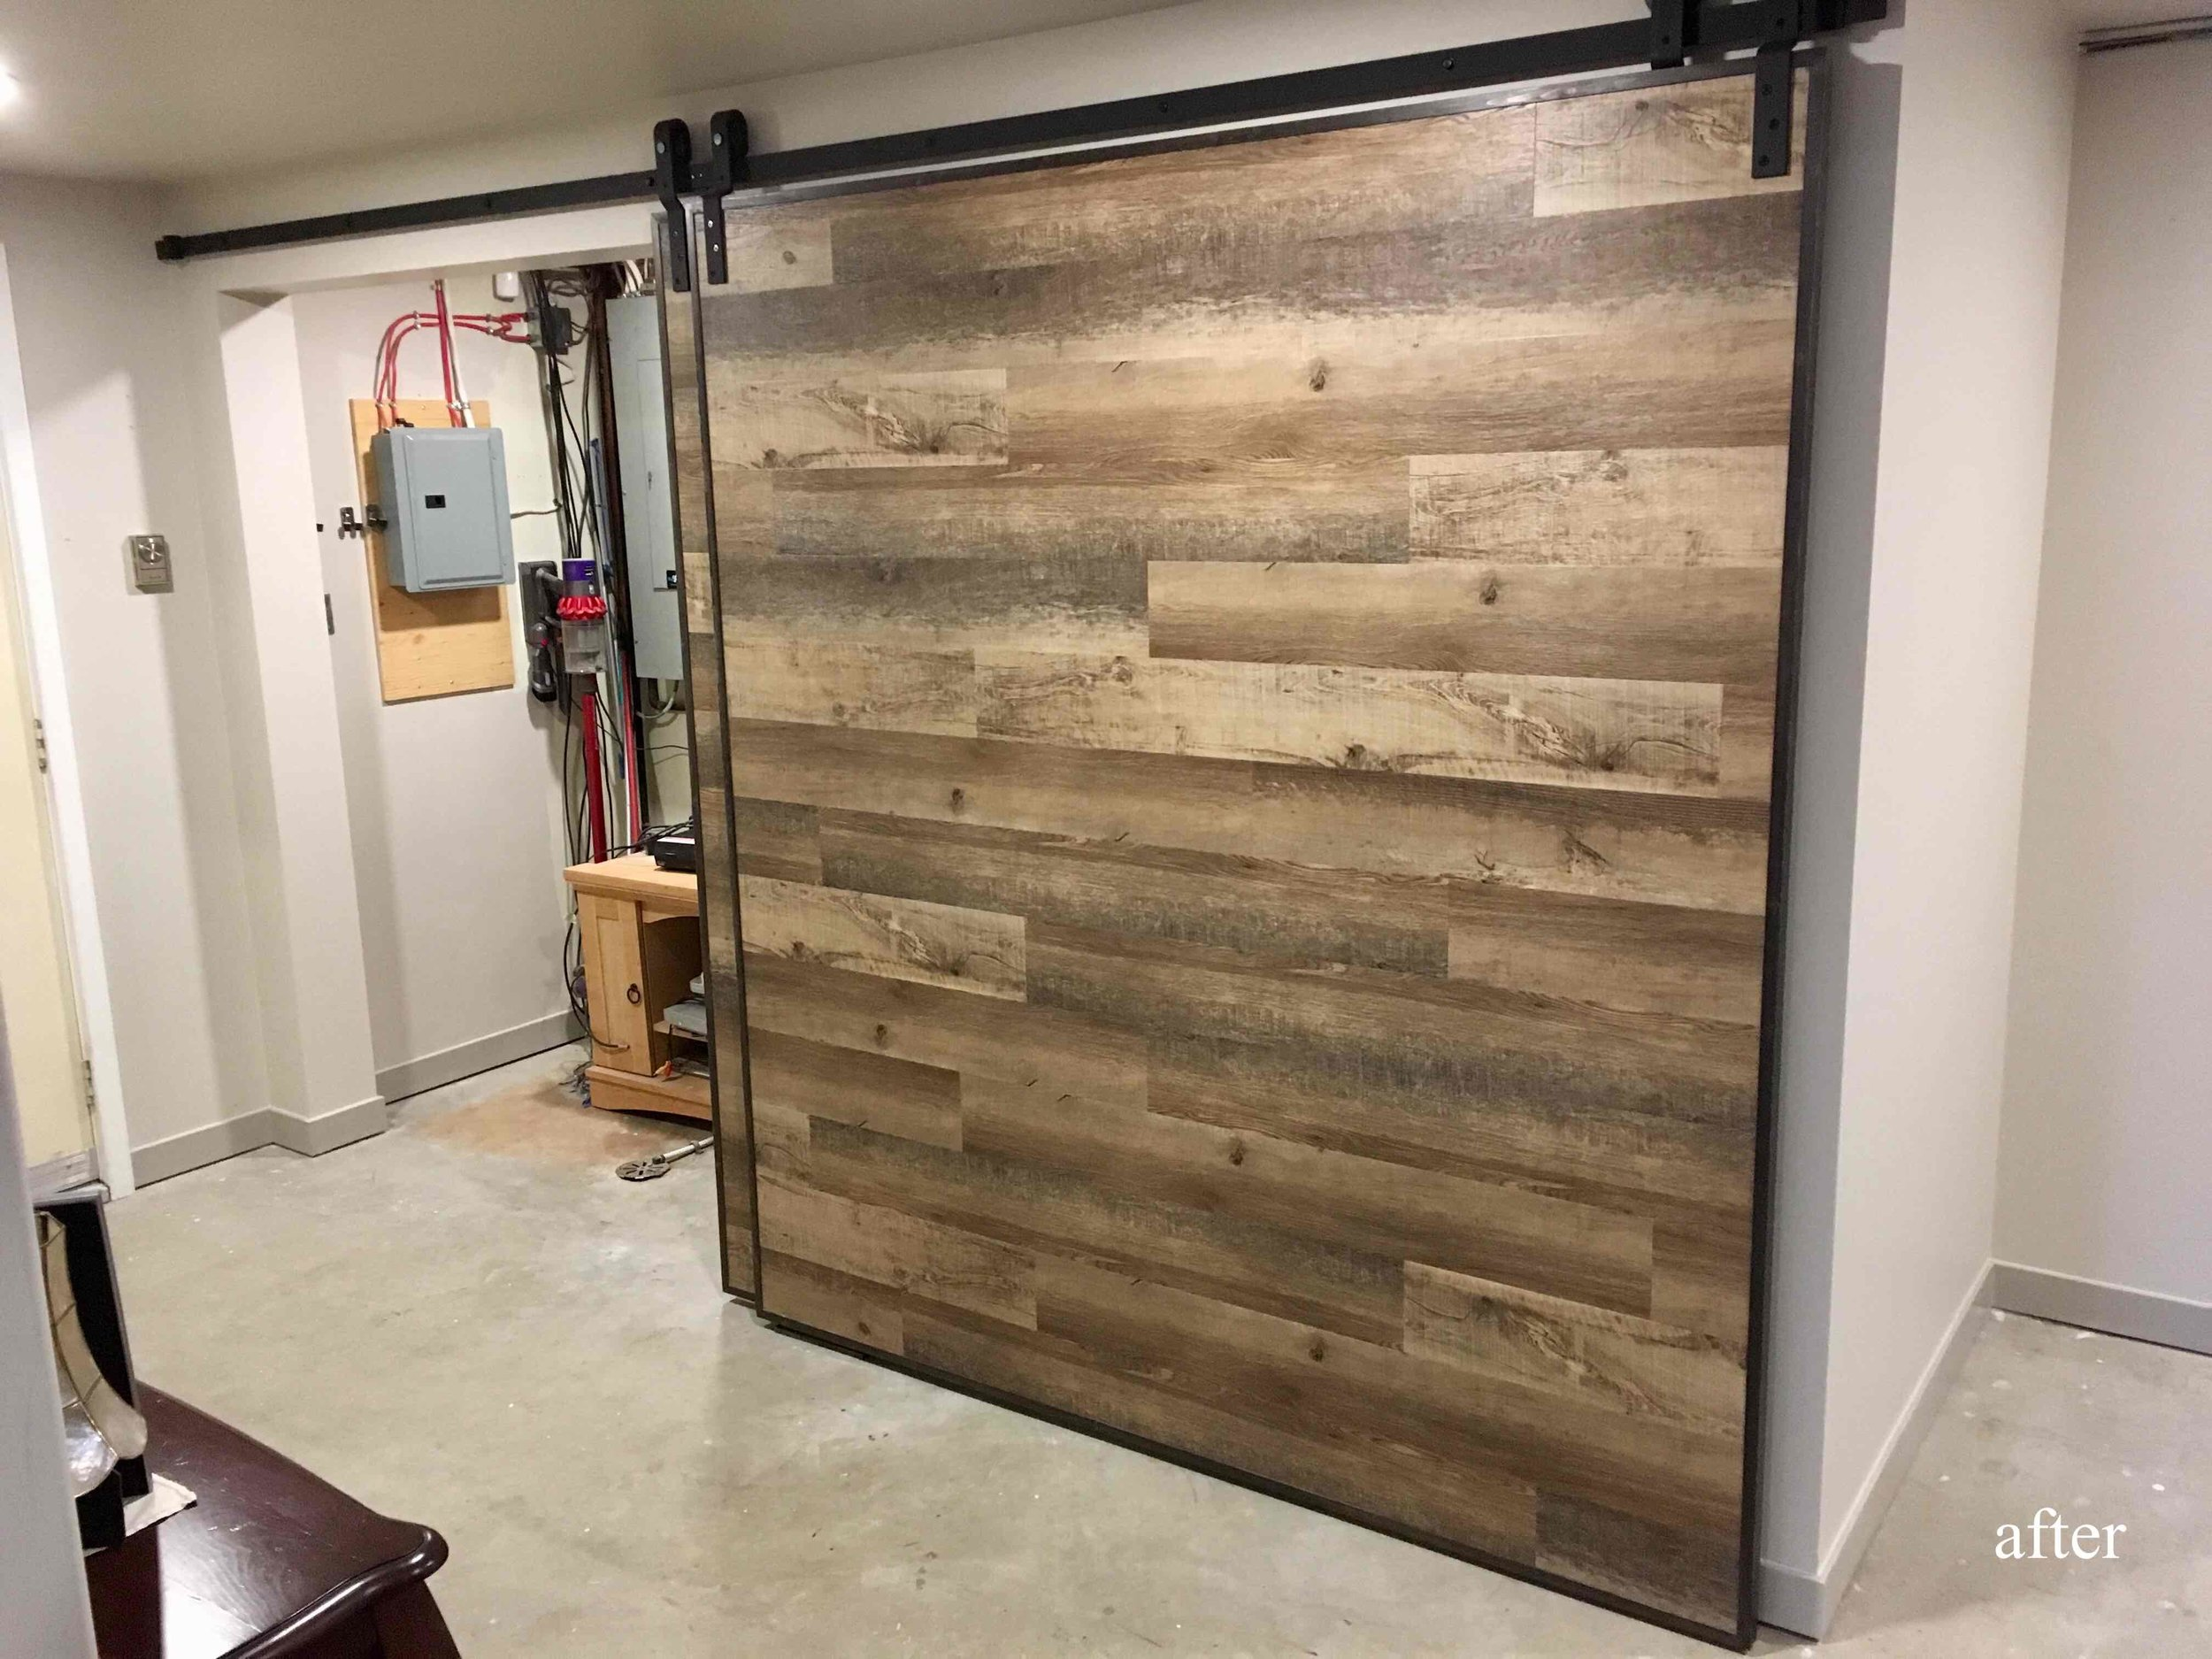 Custom hand made barn doors to hide storage area.